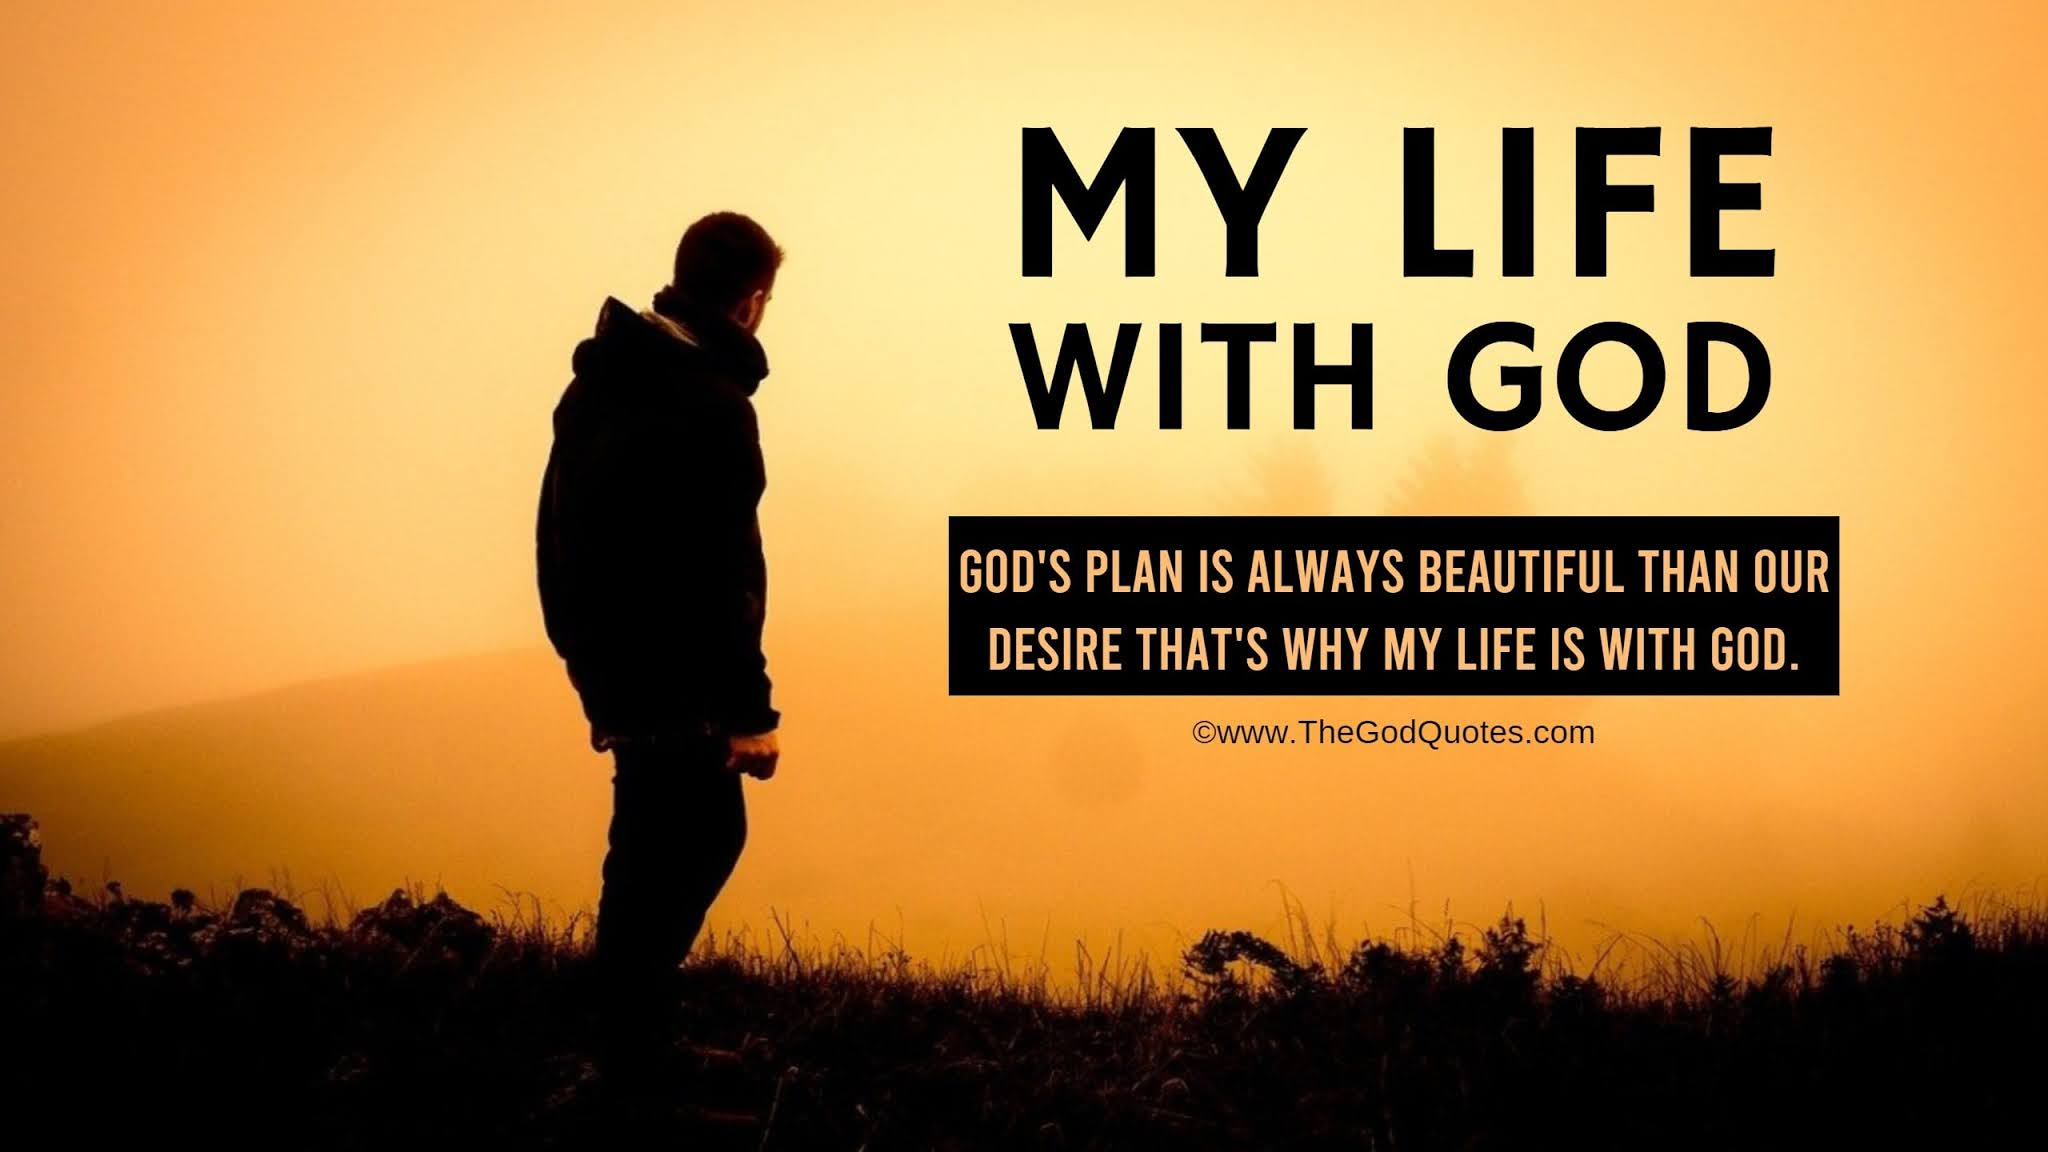 Life With God Quotes & Sayings